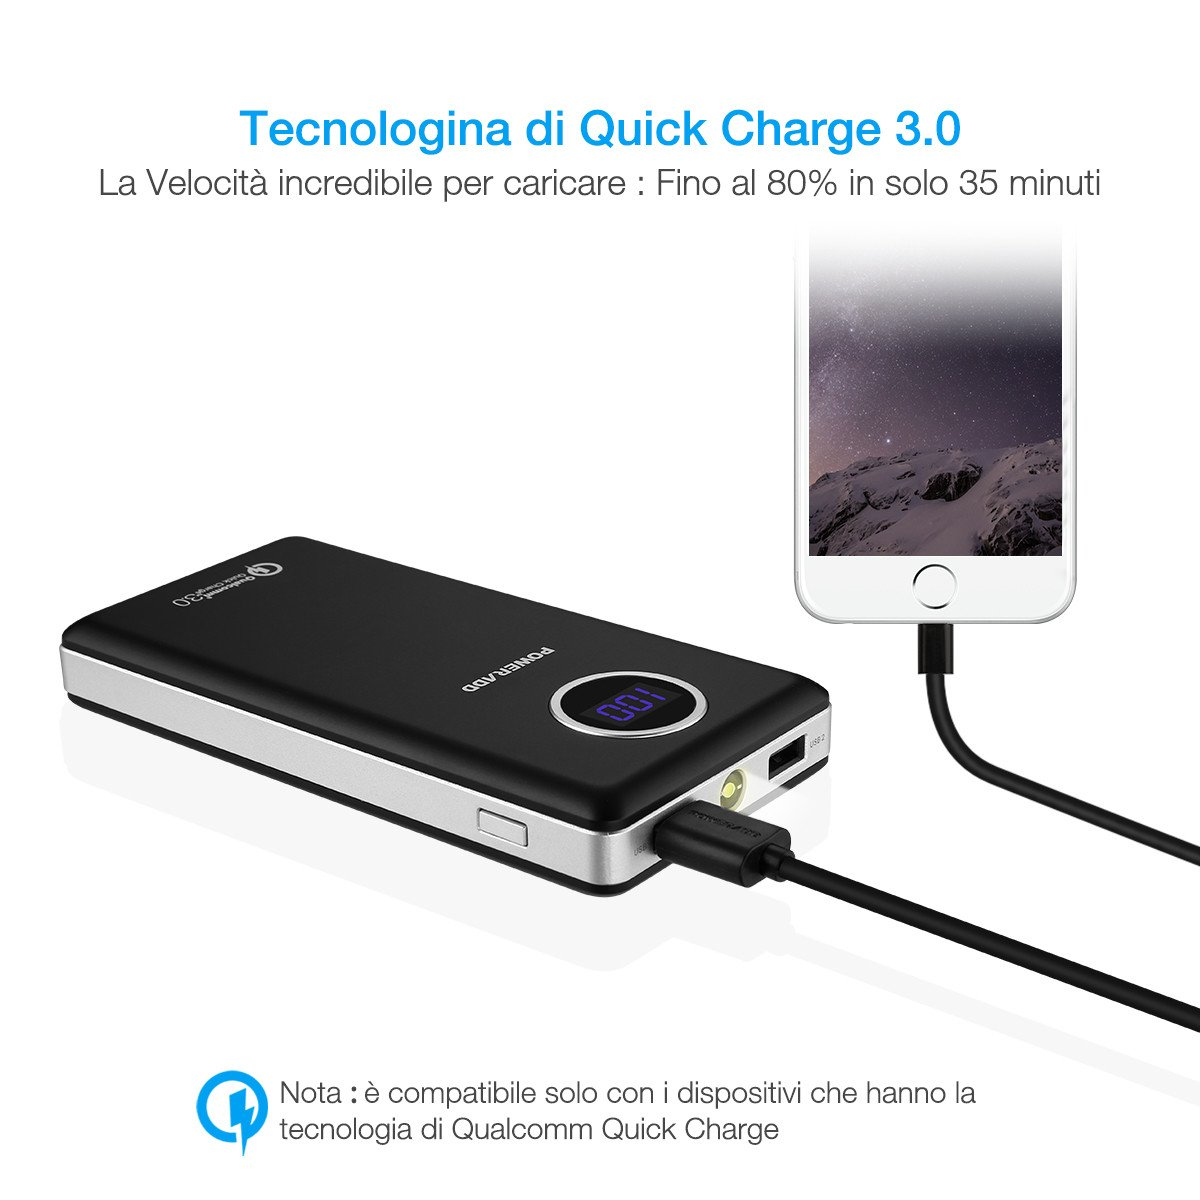 POWERADD【Qualcomm Quick Charge 3.0】Batteria Portatile 20100mAh Doppia Uscita Con LED Display e la torcia per iPhone,smartphone e tablet (Micro USB Cavo è incluso)